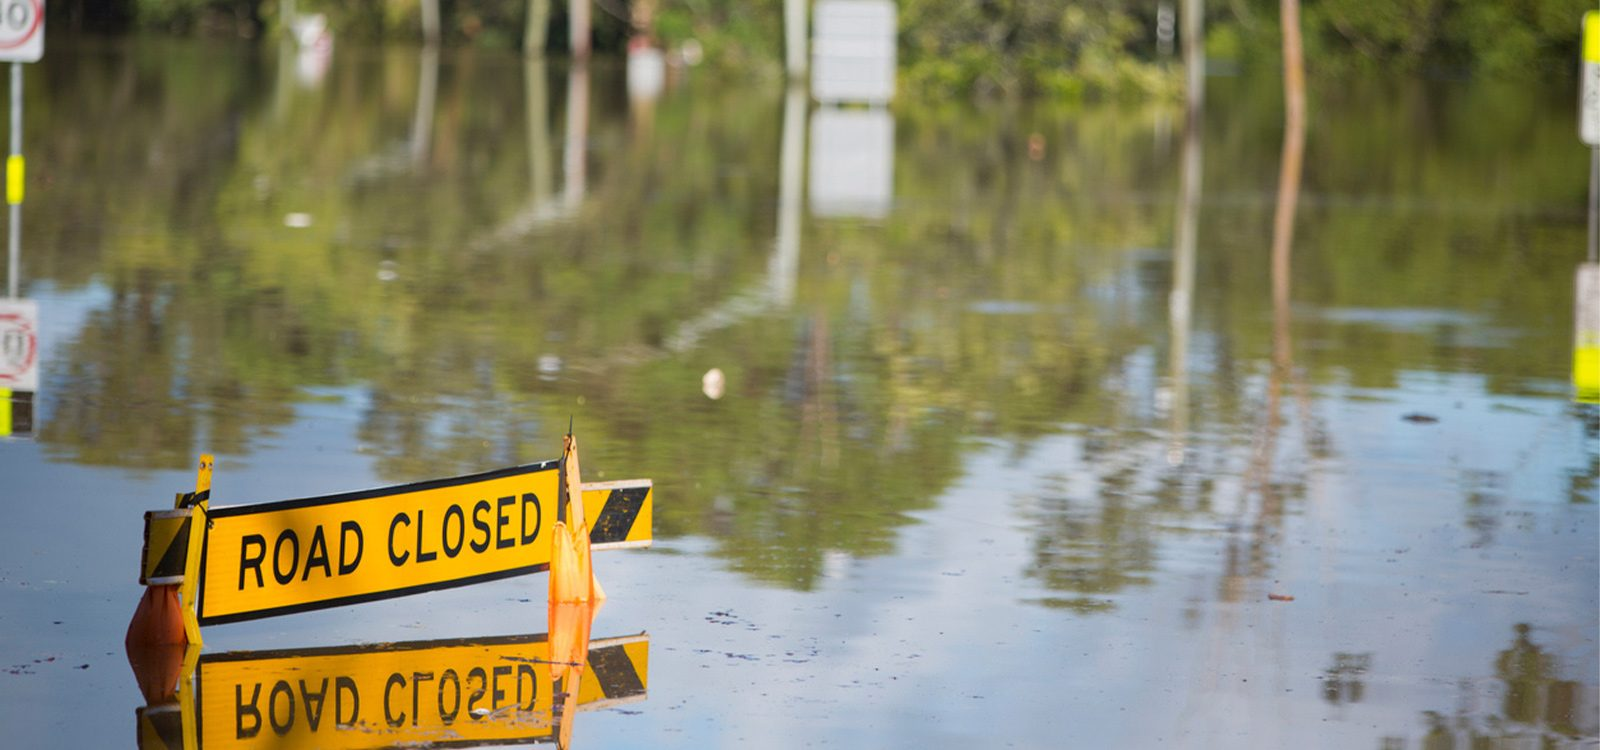 The role of insurance in enhancing societal resilience to flood risk